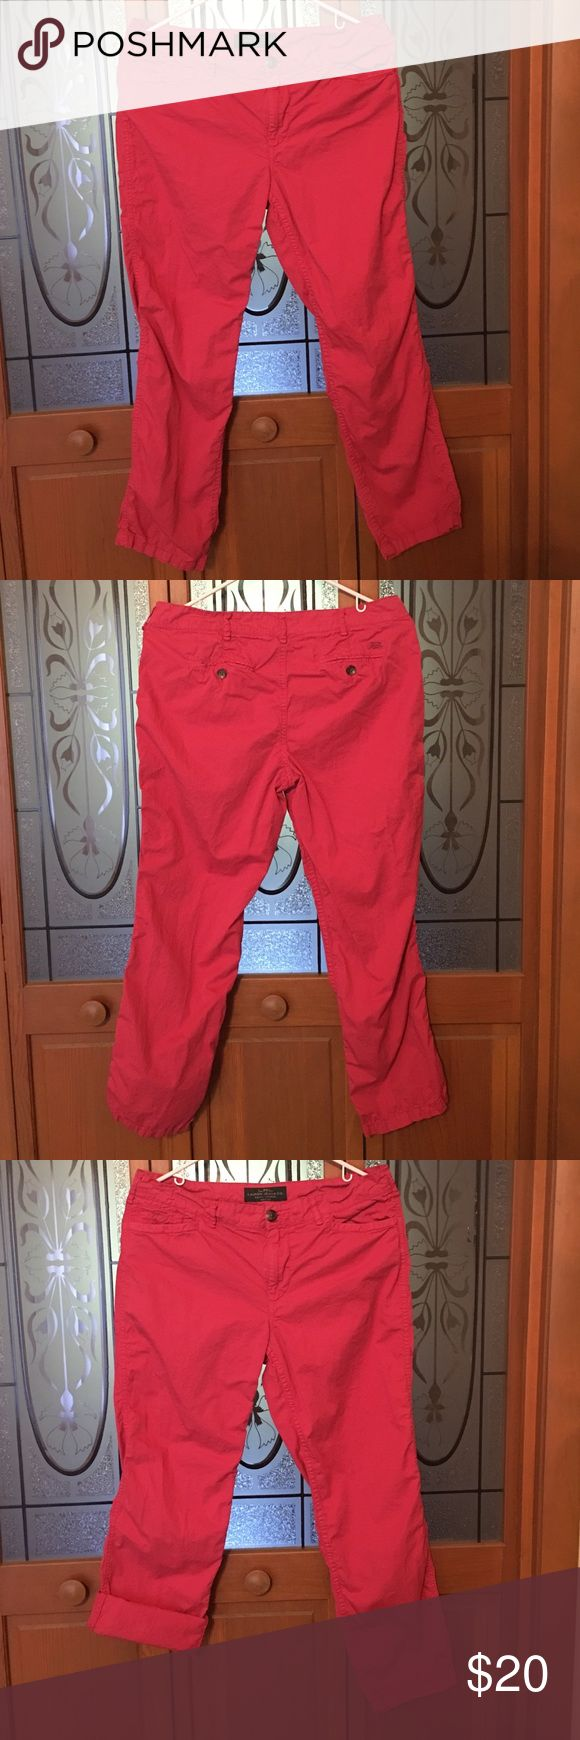 Ralph Lauren Pink Capris Ralph Lauren Lauren Jeans Co pink capris, size 8 petite. Super cute, can be worn at any length. Light material, soft and comfy. Excellent condition, practically brand new. Smoke free home. Ralph Lauren Pants Capris